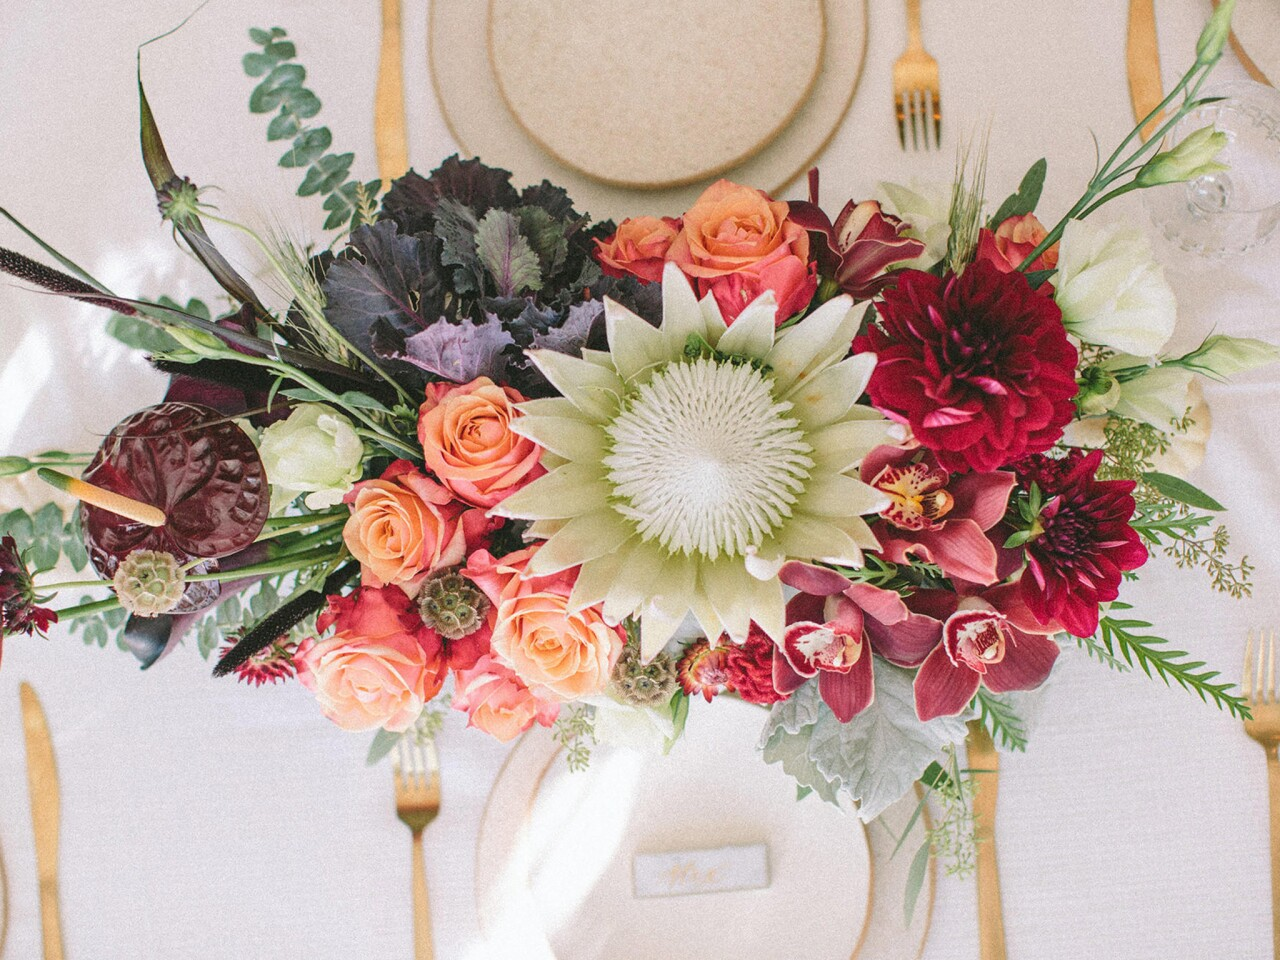 """Alexandra Scholtz, co-owner of WildFlora landscaping, gift and flower shops in Studio City and on West Third Street, enjoys presenting """"a very dense tablescape of rich colors and textures,"""" with fall fruits and handmade dishes from Corrin Ceramics."""